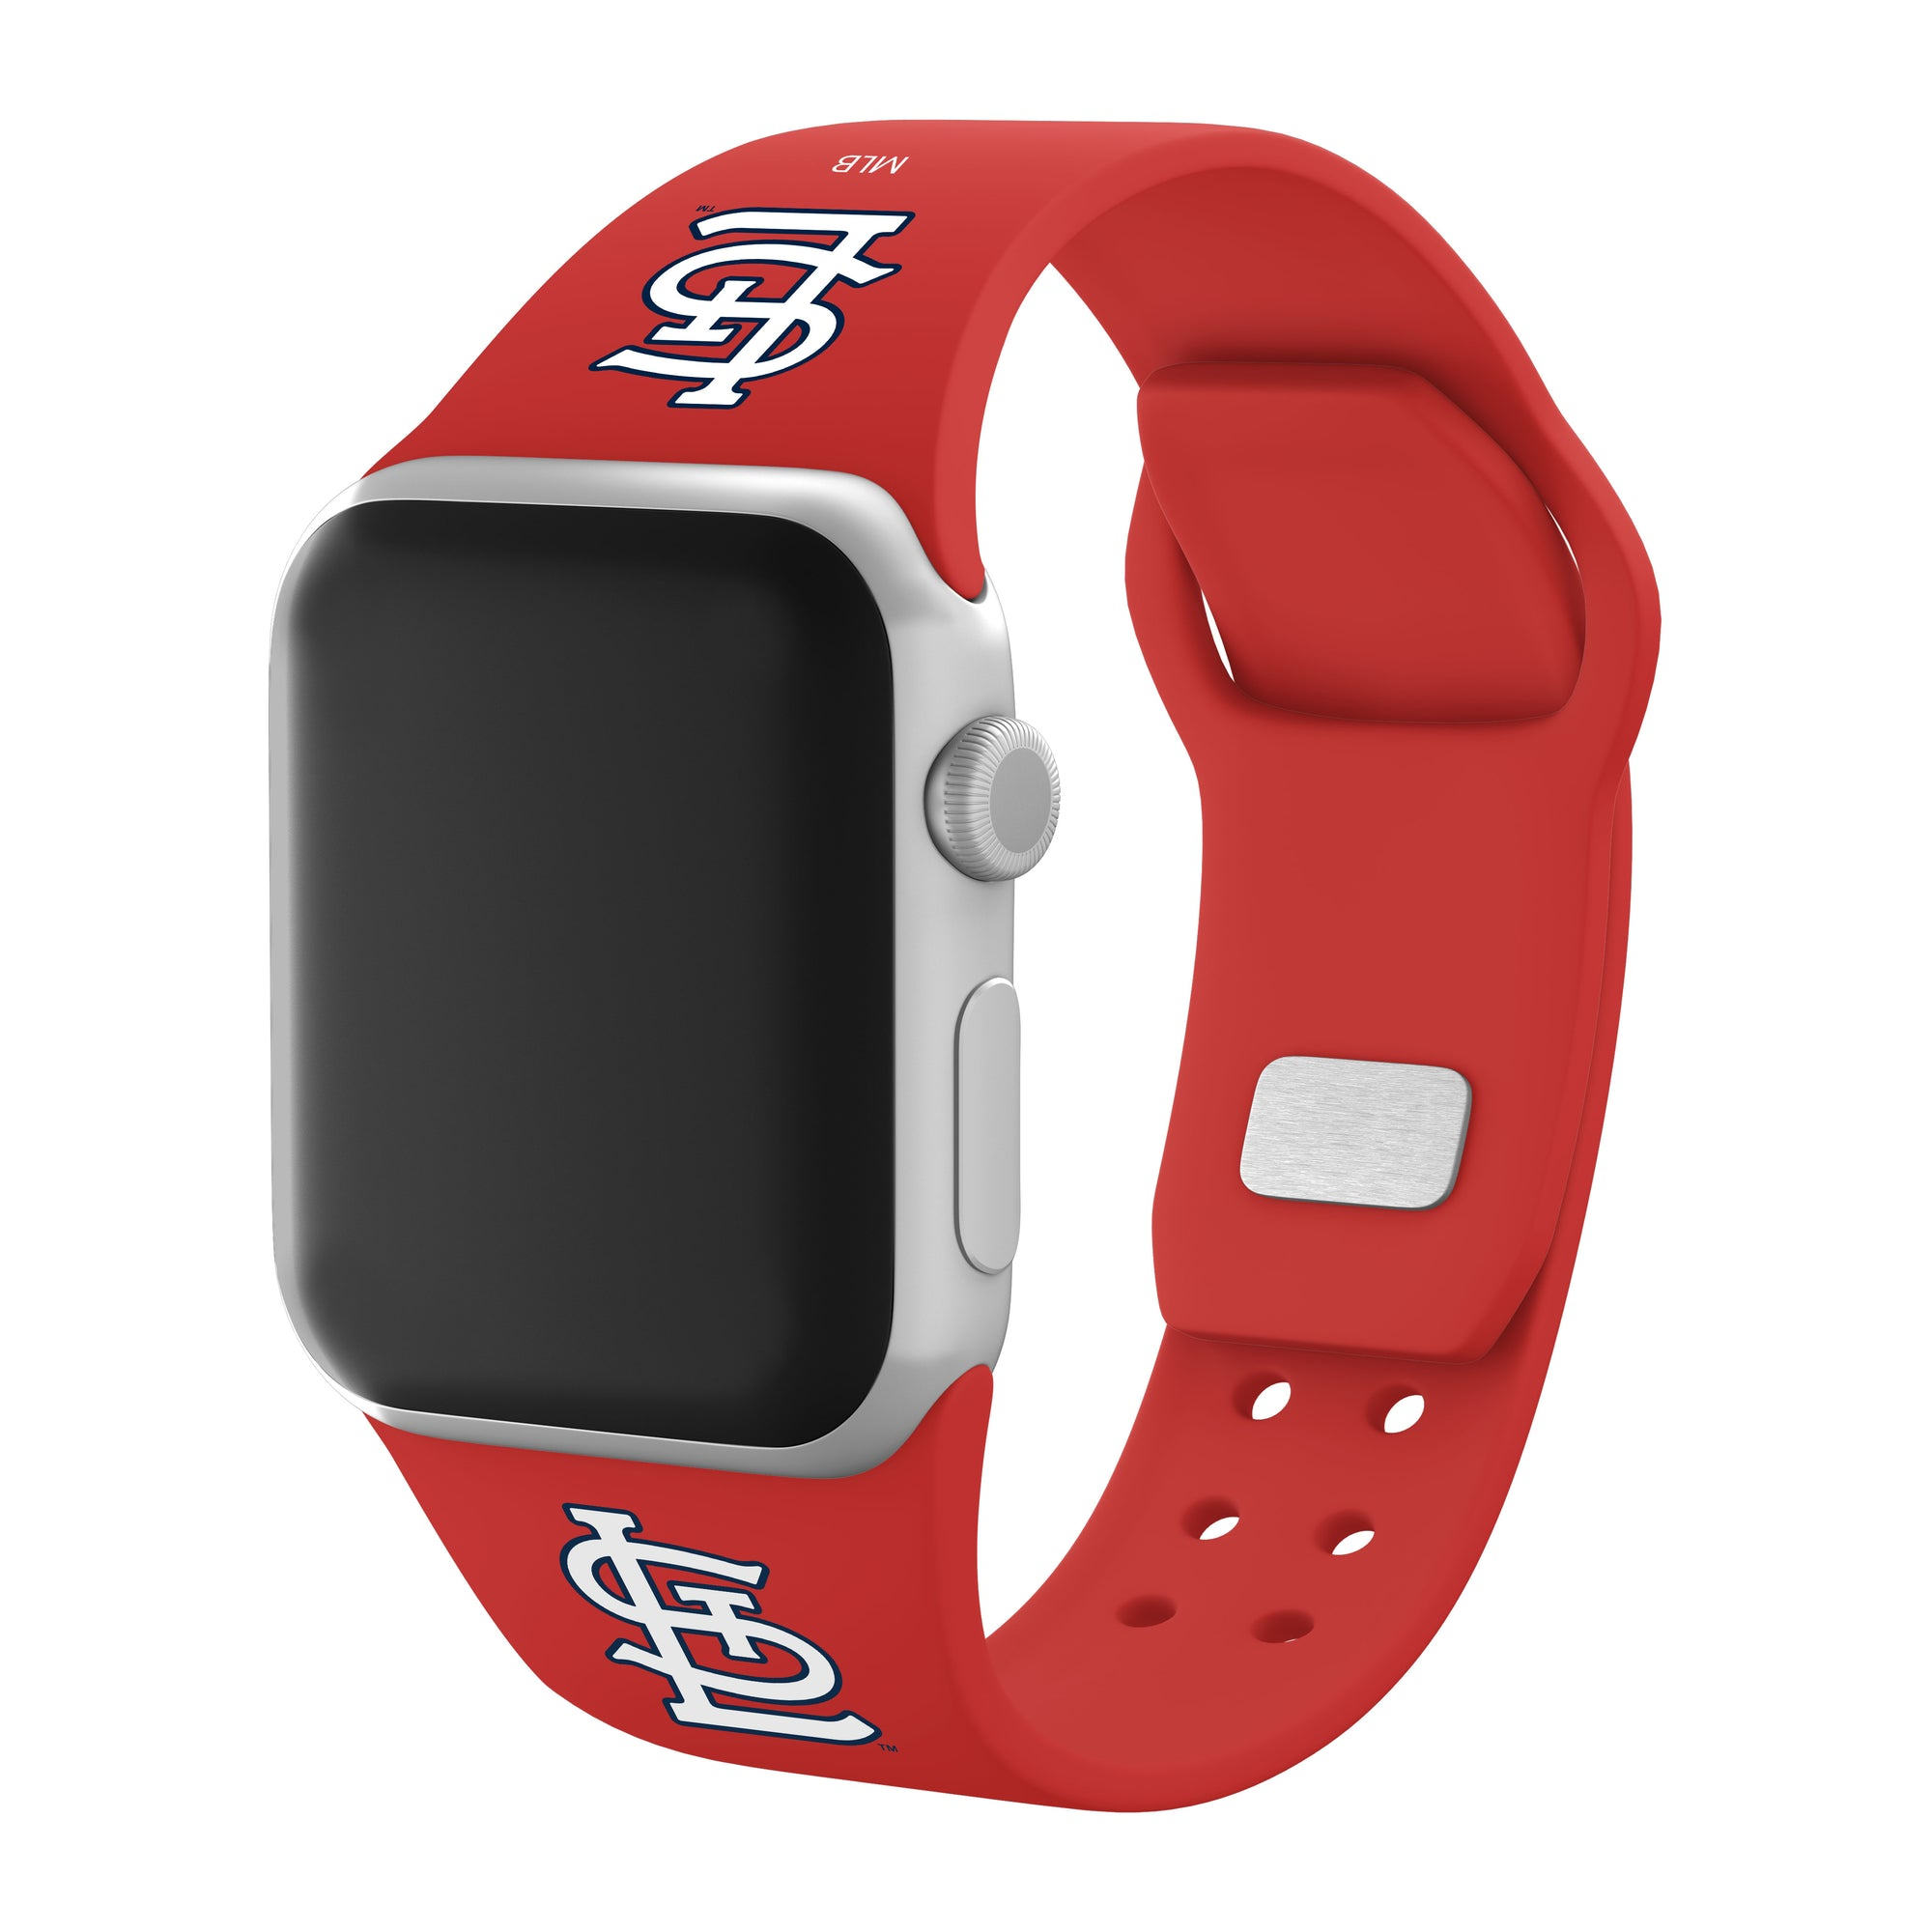 St. Louis Cardinals Silicone Apple Watch Band